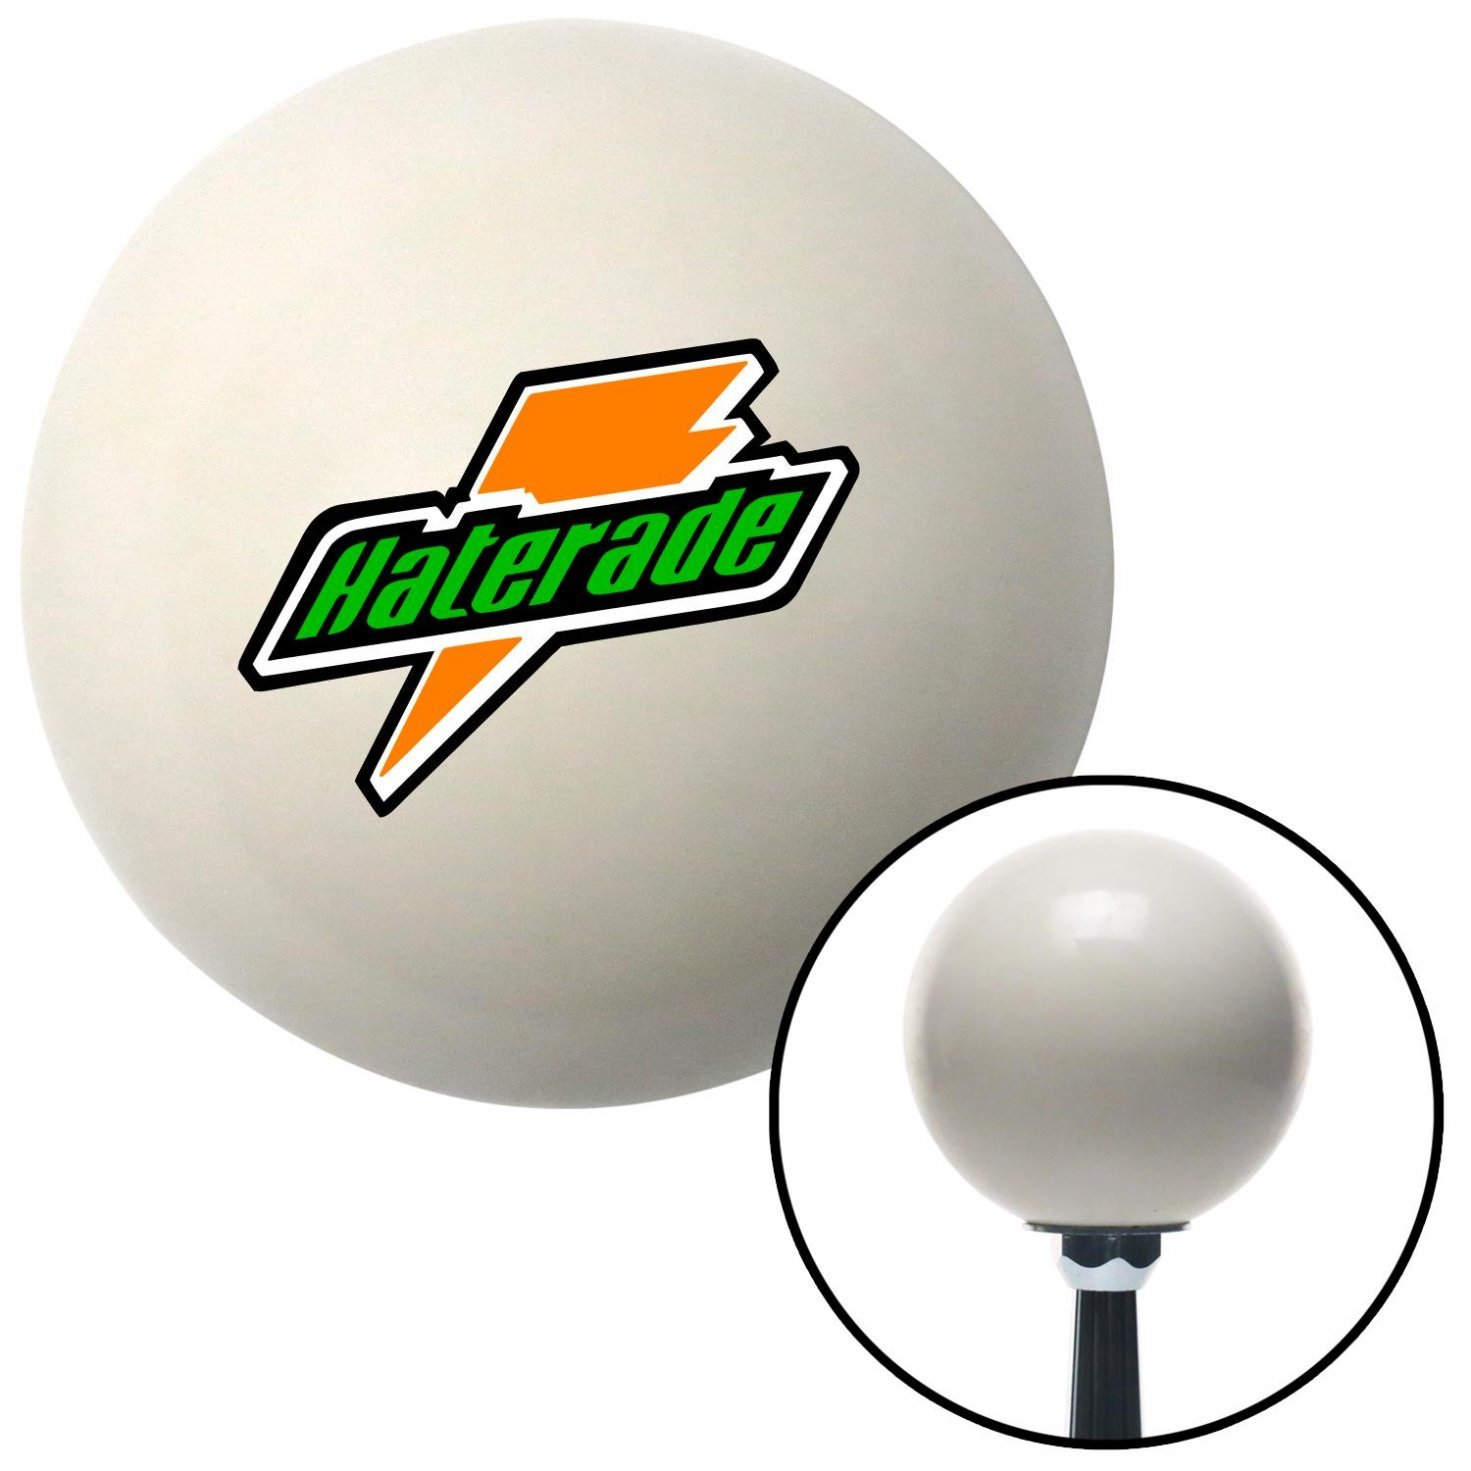 American Shifter 42251 Ivory Shift Knob with 16mm x 1.5 Insert Haterade Logo